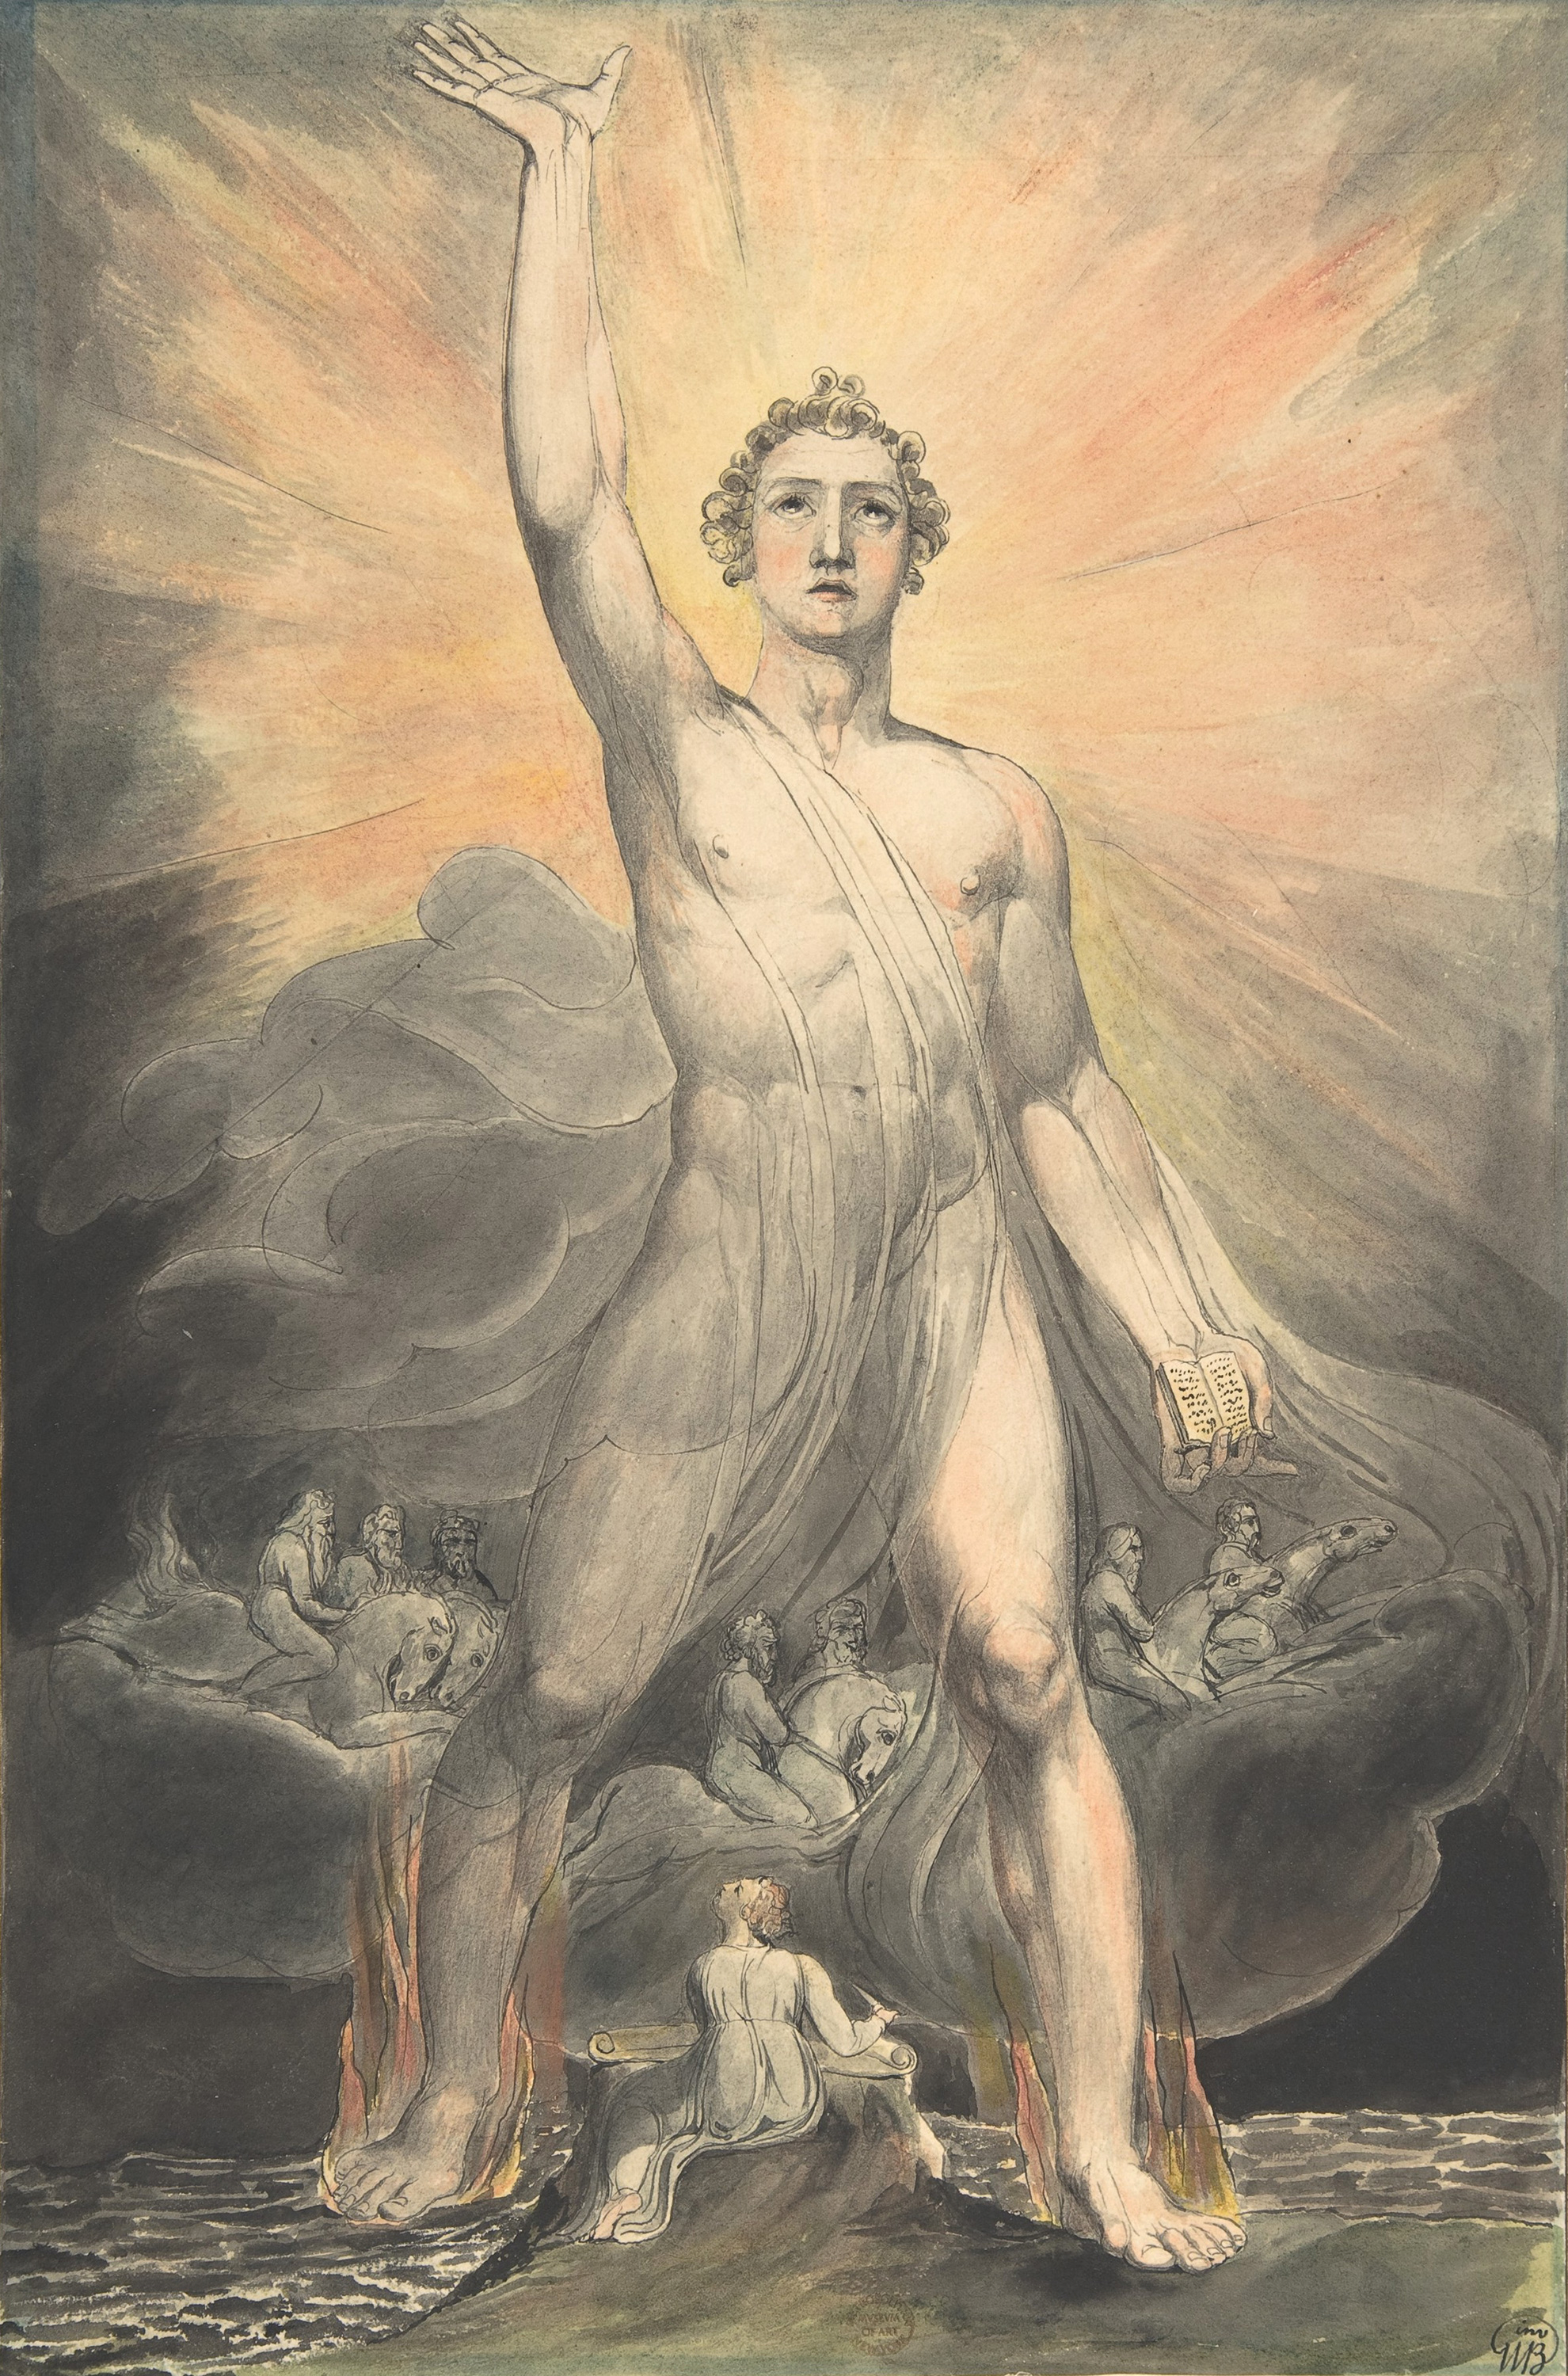 'Angel of the Revelation' 1805 - William Blake